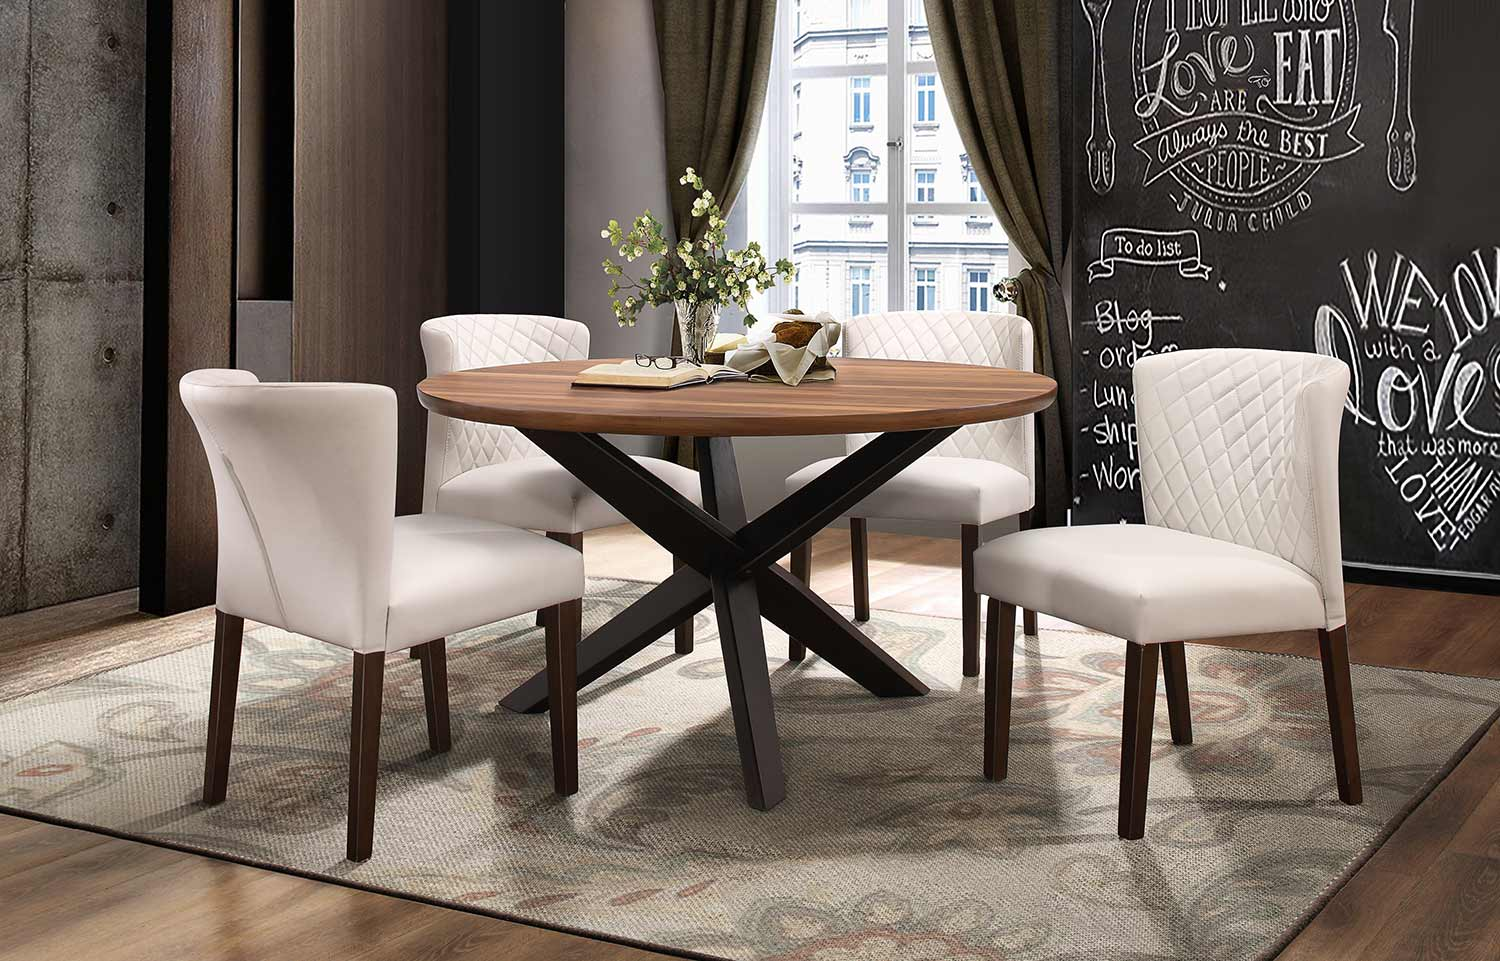 Homelegance Nelina Round Dining Set - Espresso-Natural